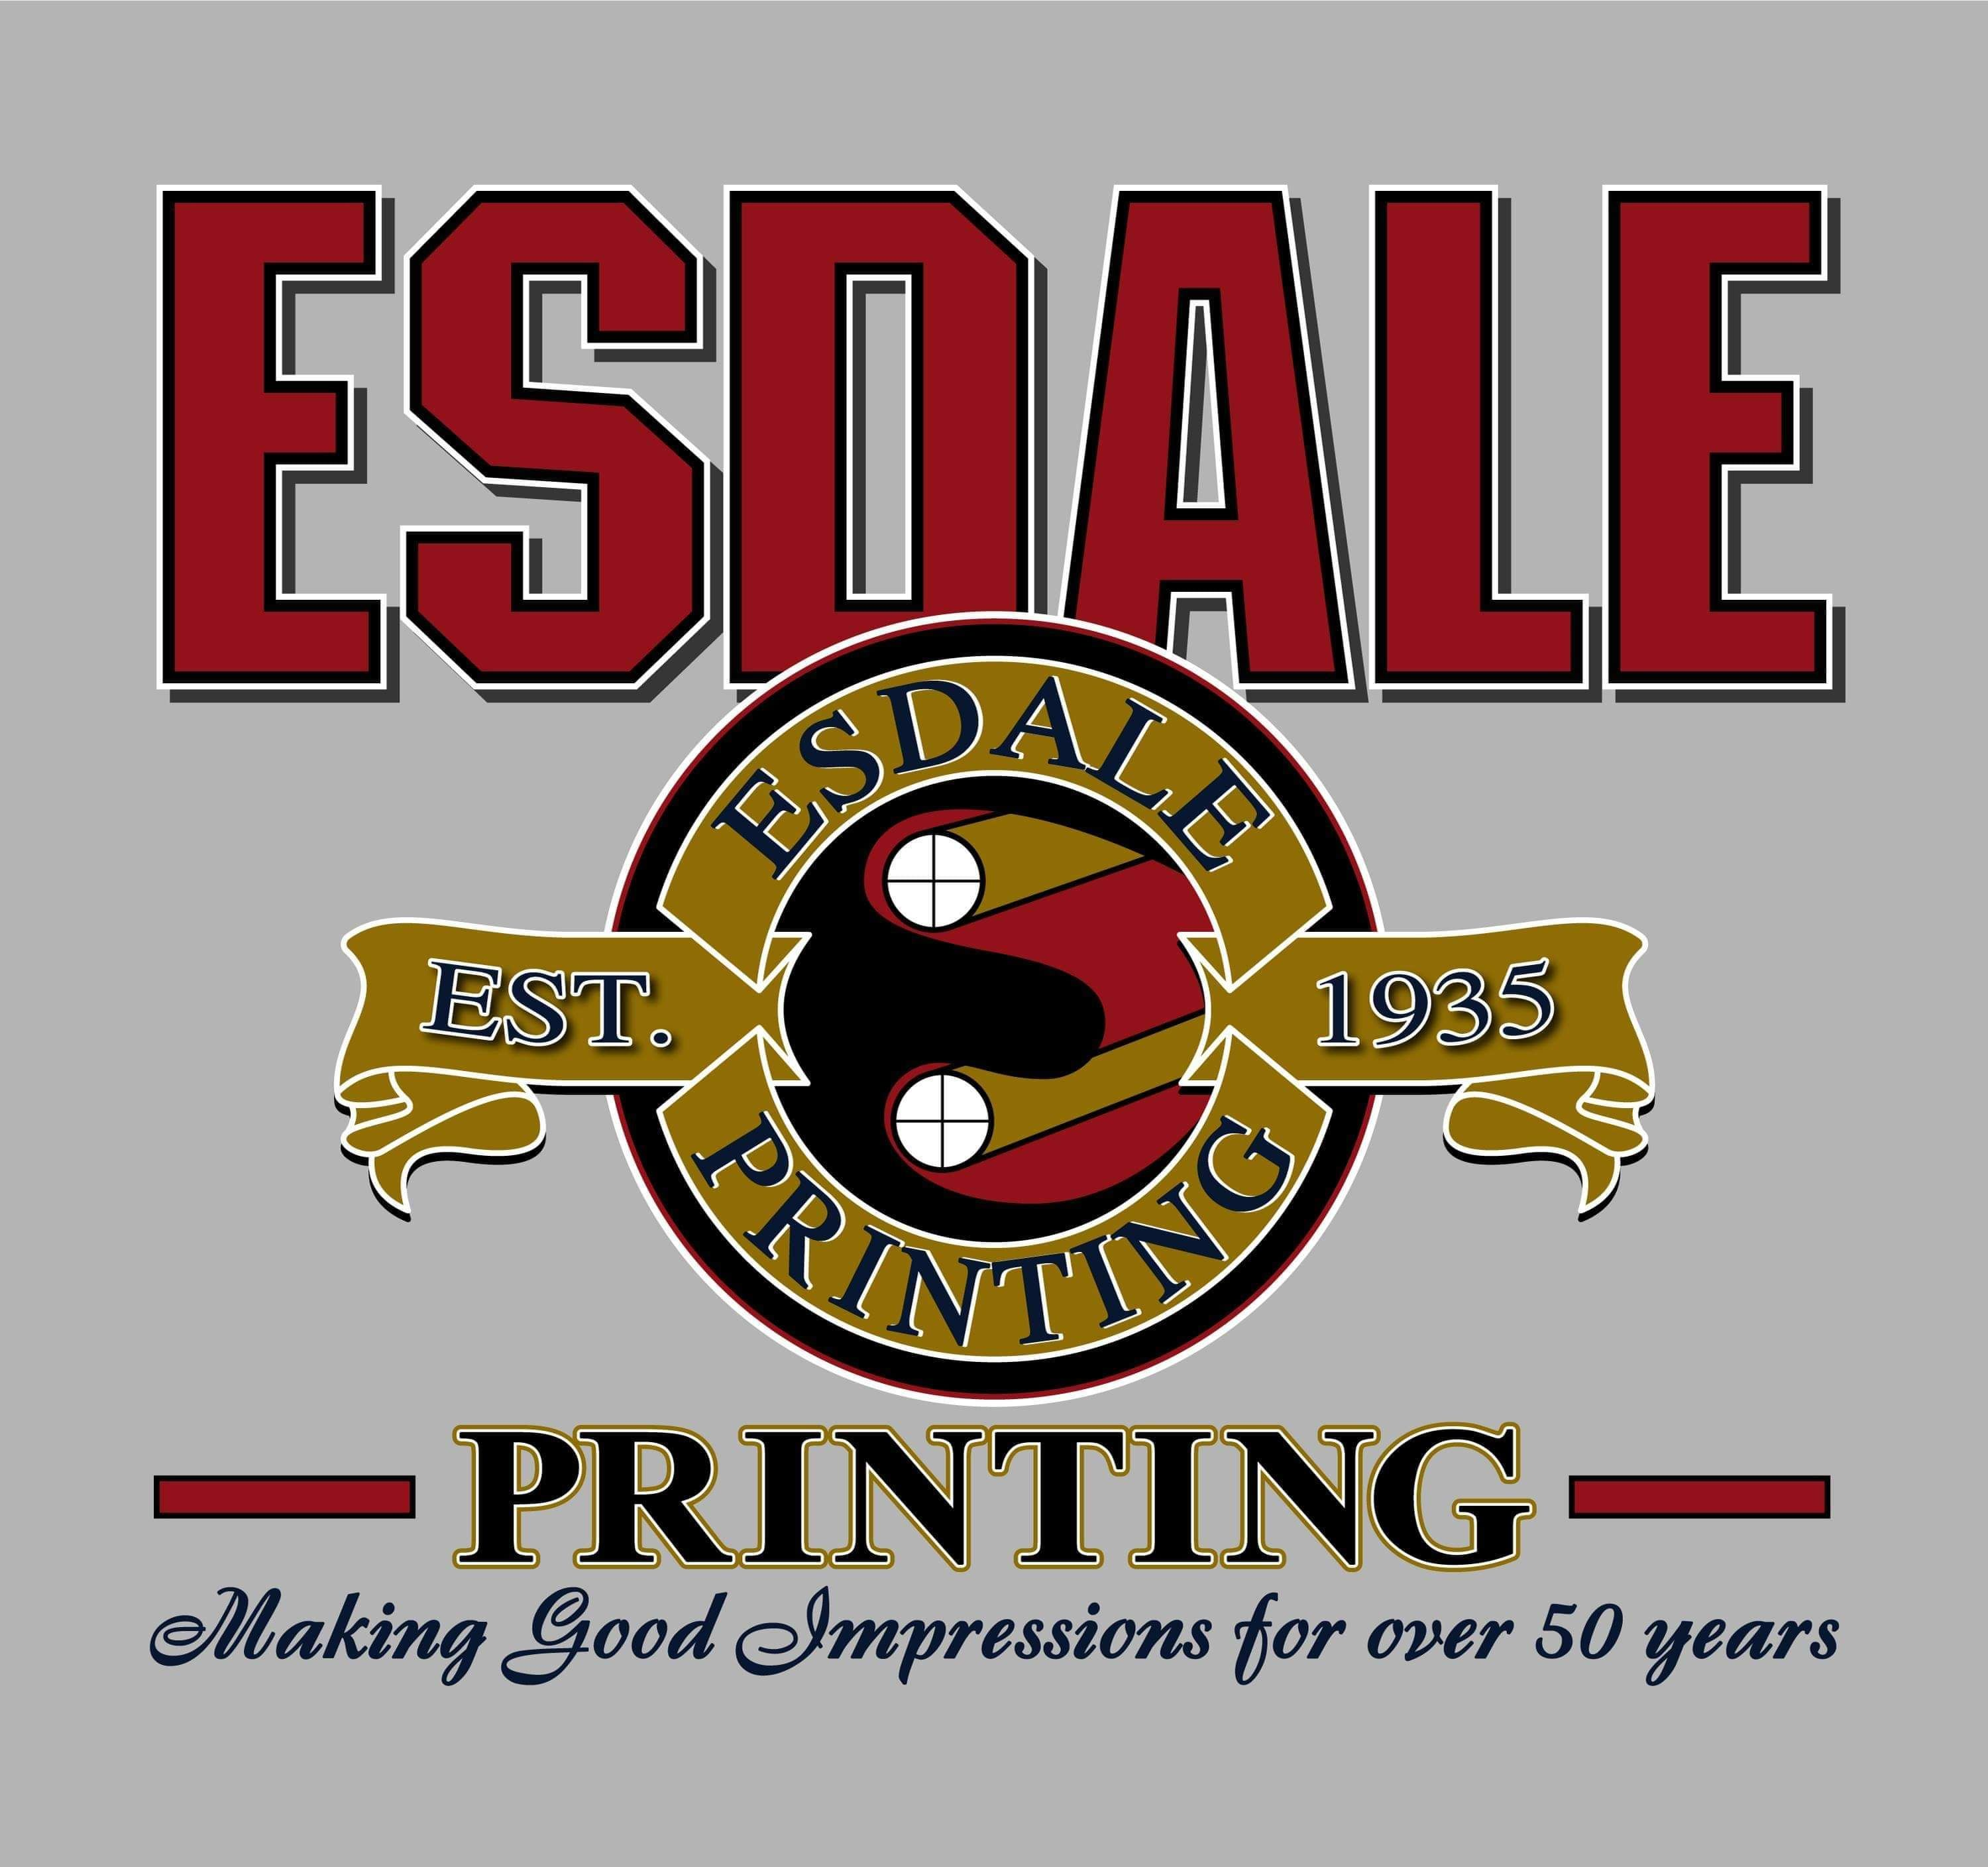 Esdale History